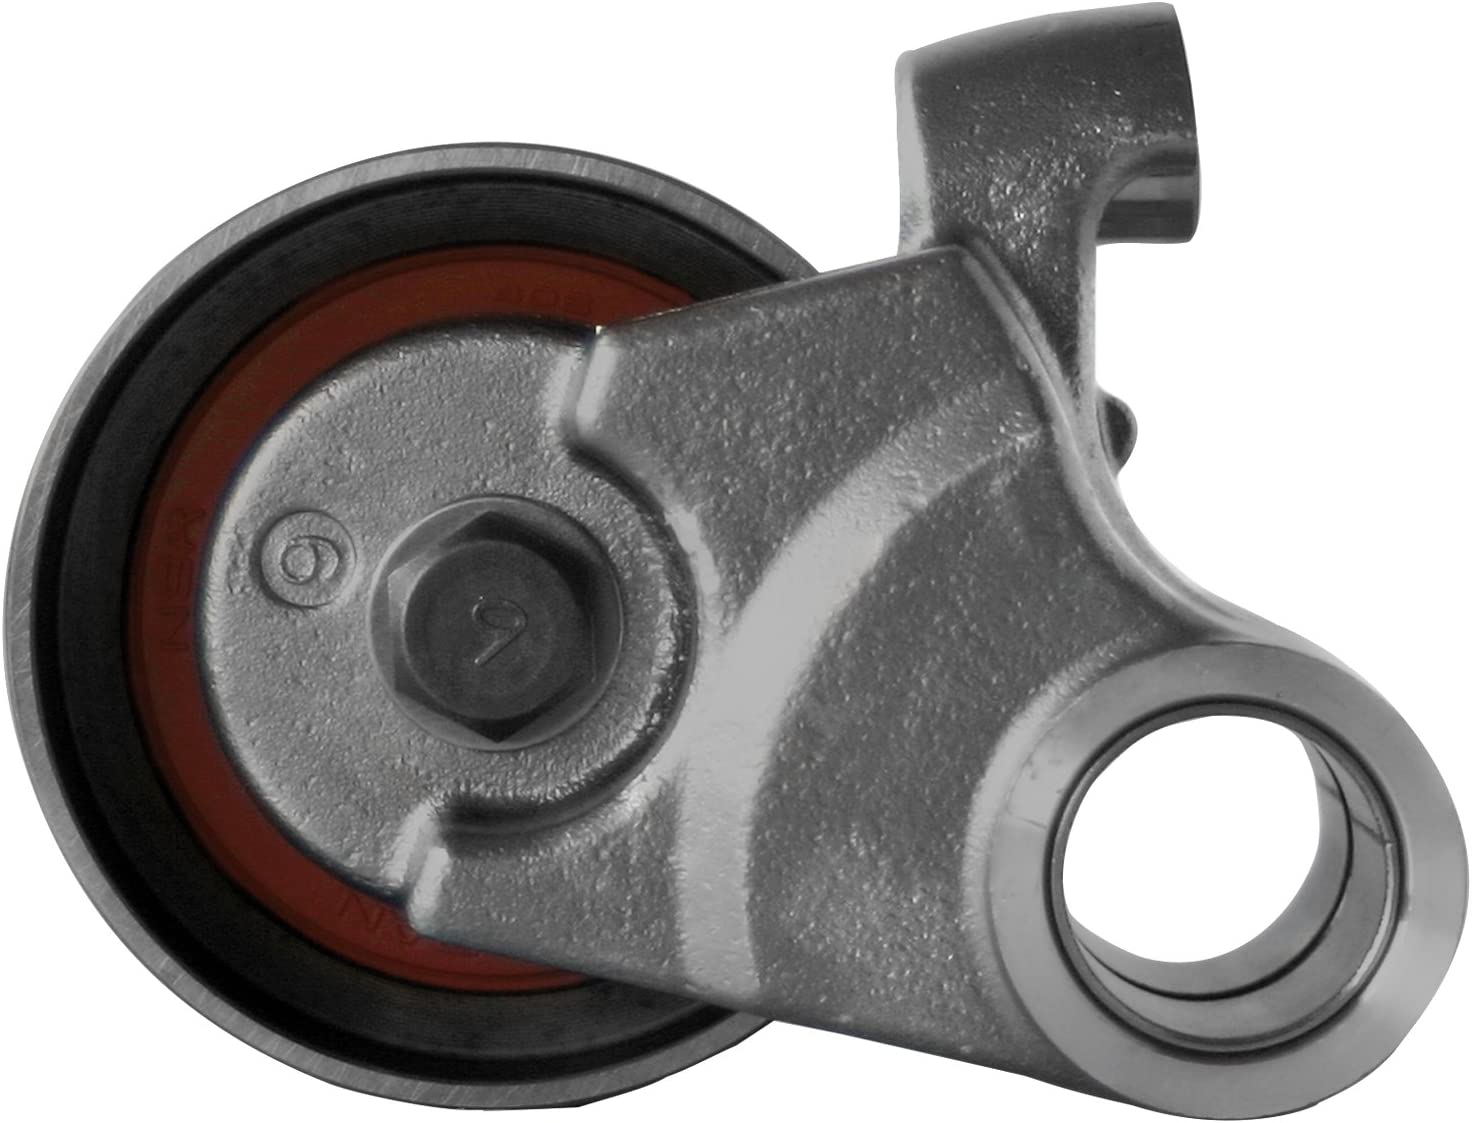 NSK 62TB0630B07 Engine Timing Belt Tensioner 1 Pack